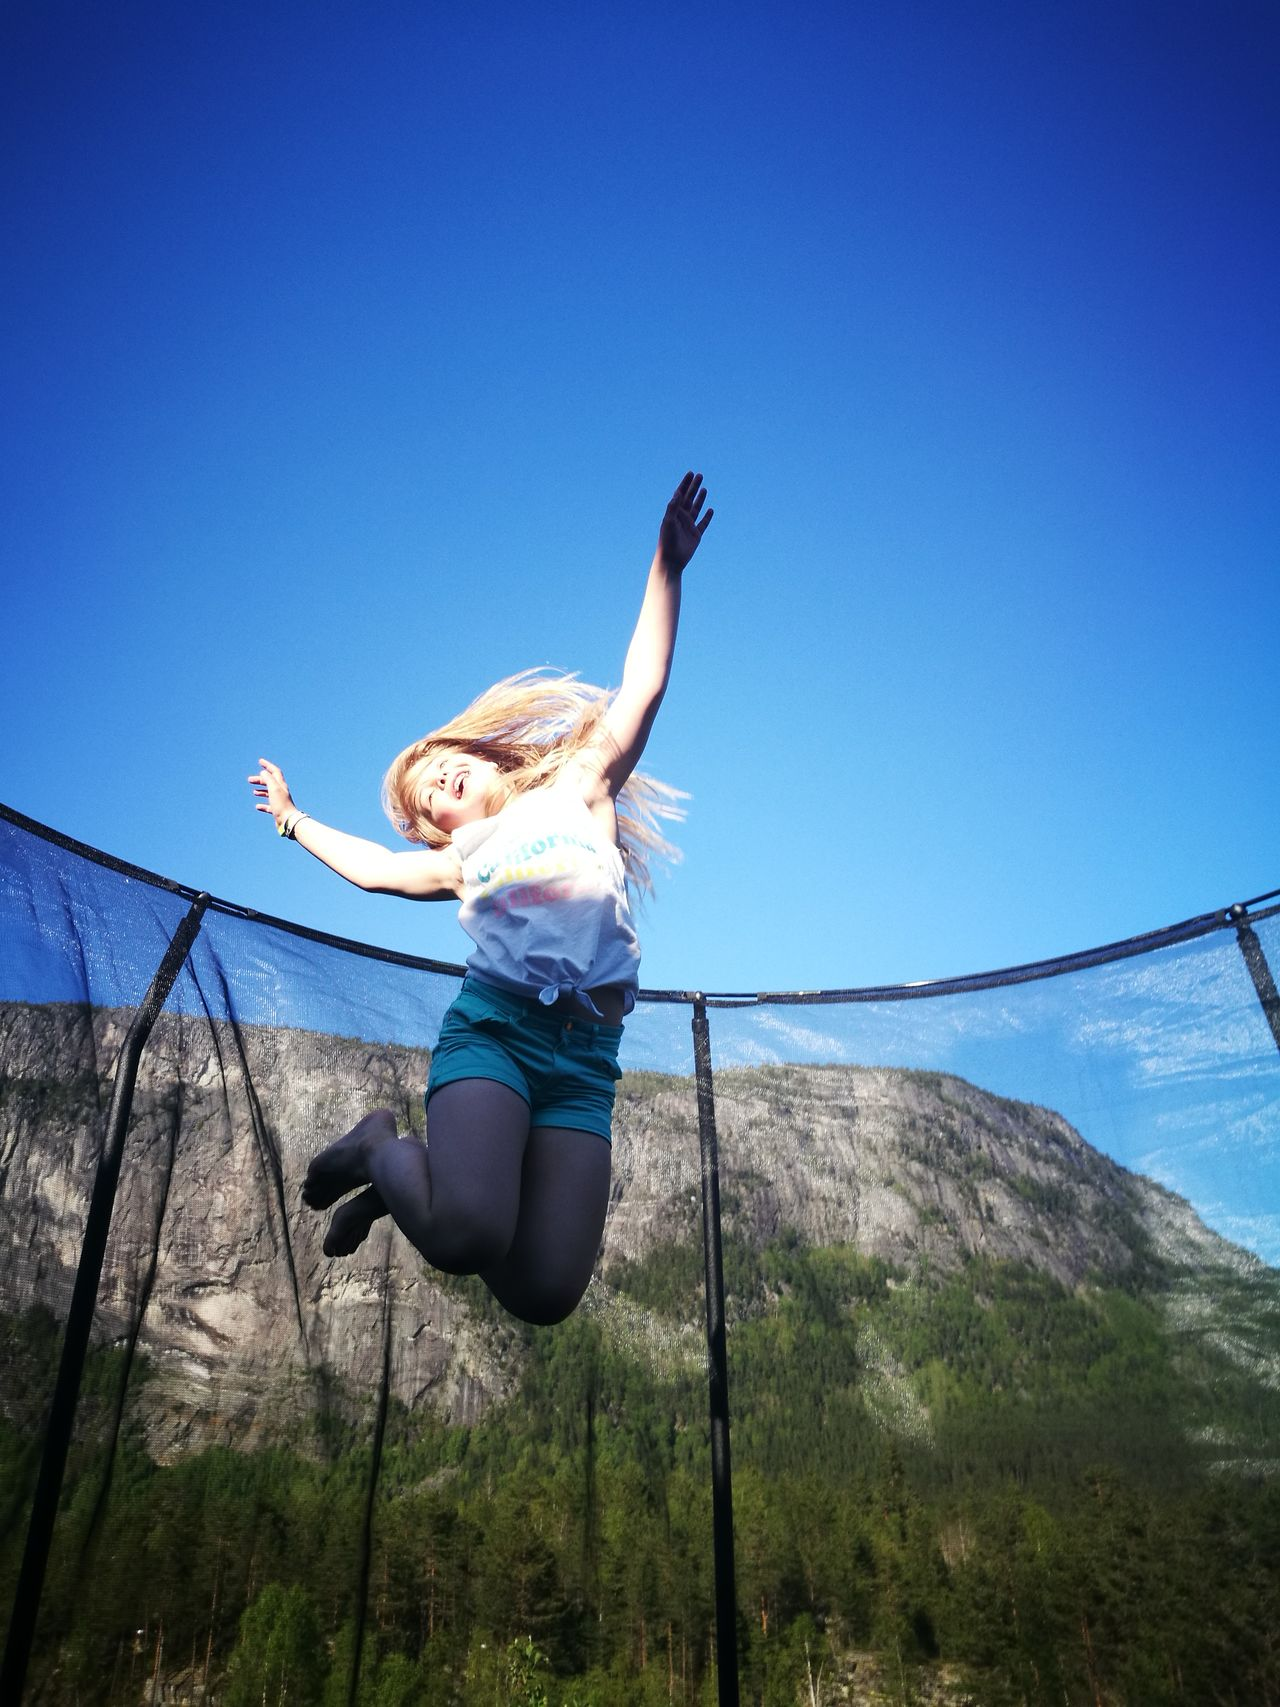 Only Women One Woman Only One Person One Young Woman Only Blue Sky People Young Women Young Adult Fun Joy Joyful Jumping Smiling In Movement Sunny Summer Summertime Setesdal HuaweiP9 Smartphonephotography